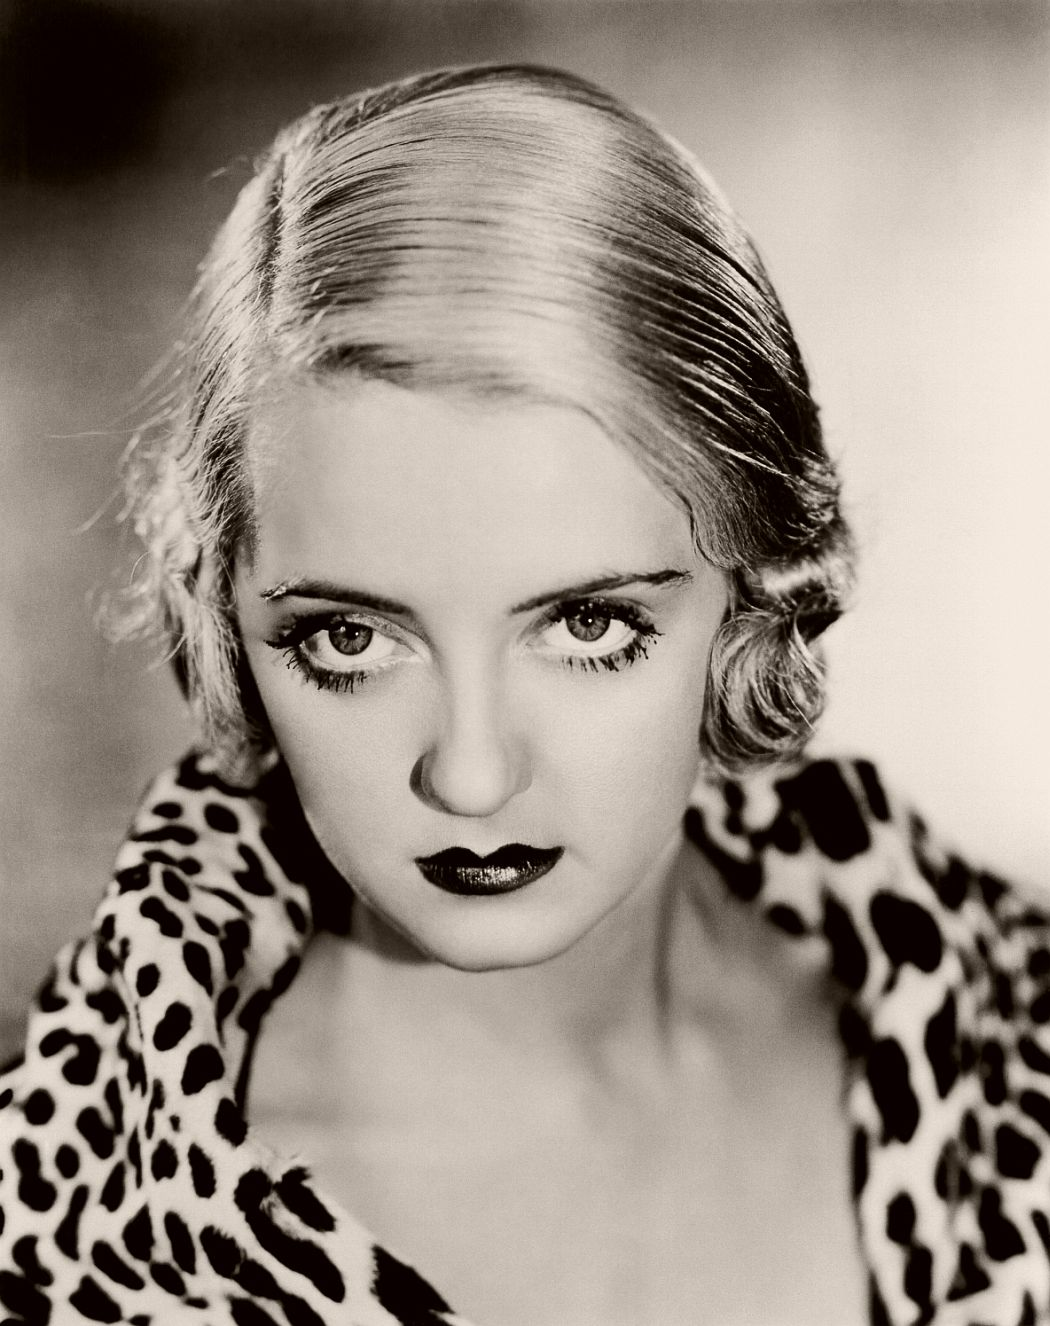 Not earmarked as conventionally beautiful by film producers, Bette Davis became every girls hero everywhere when she famously proclaimed, 'Hollywood wanted me to be pretty, but I fought for realism.' Aside from being a feminist icon, Bette's style icon status lay in her signature blonde bob which she rocked in the '30s.